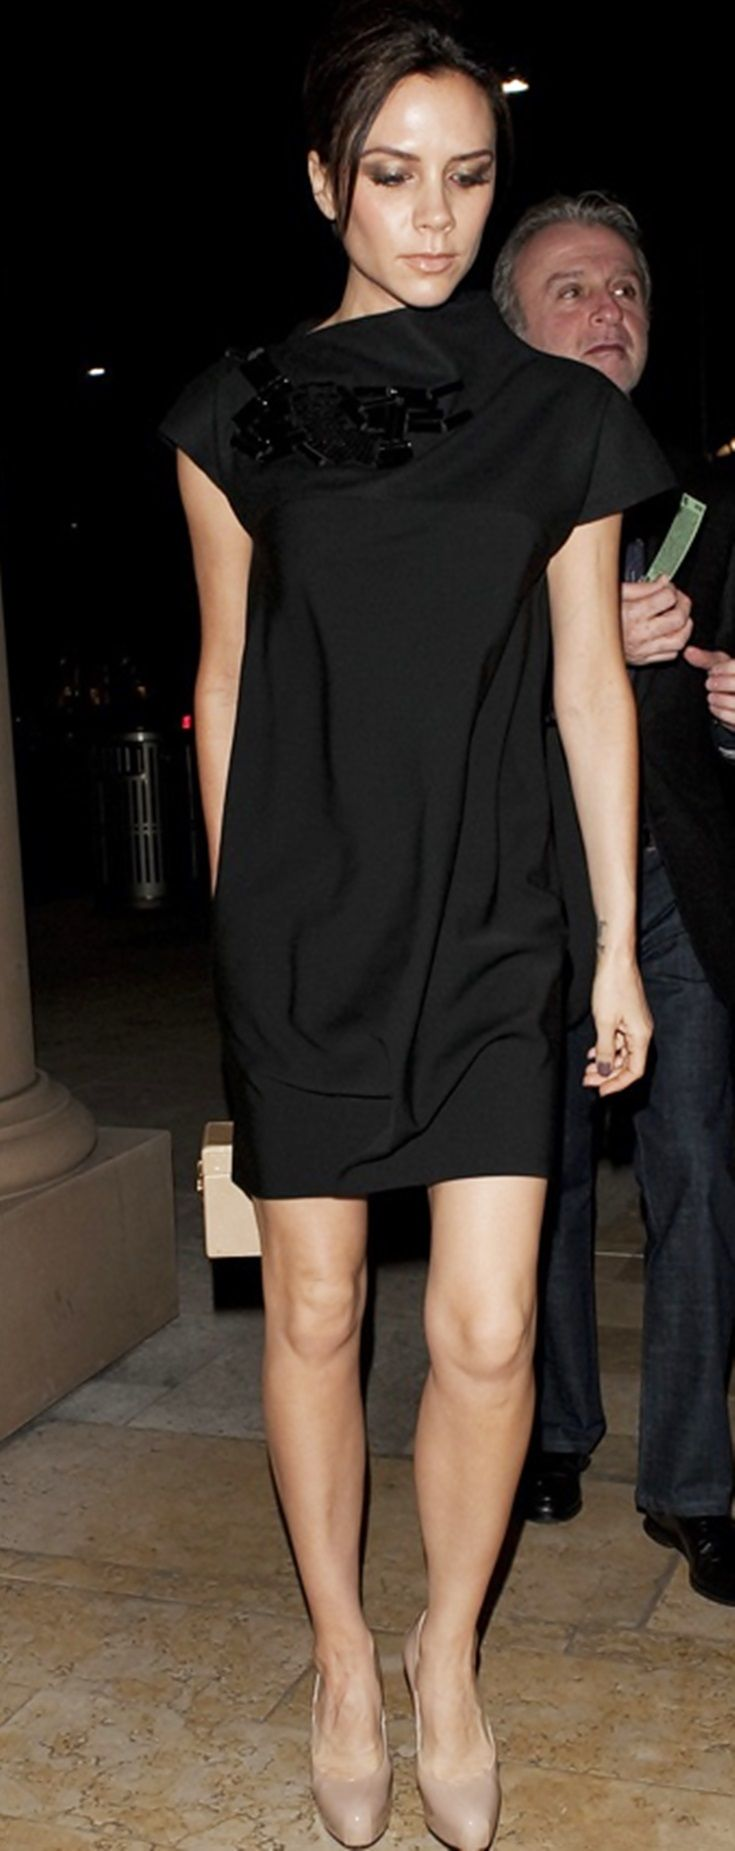 Best 25 Victoria Beckham Outfits Ideas Only On Pinterest  Victoria Beckham, Victoria Beckham Style And Victoria Beckham Clothing-4005